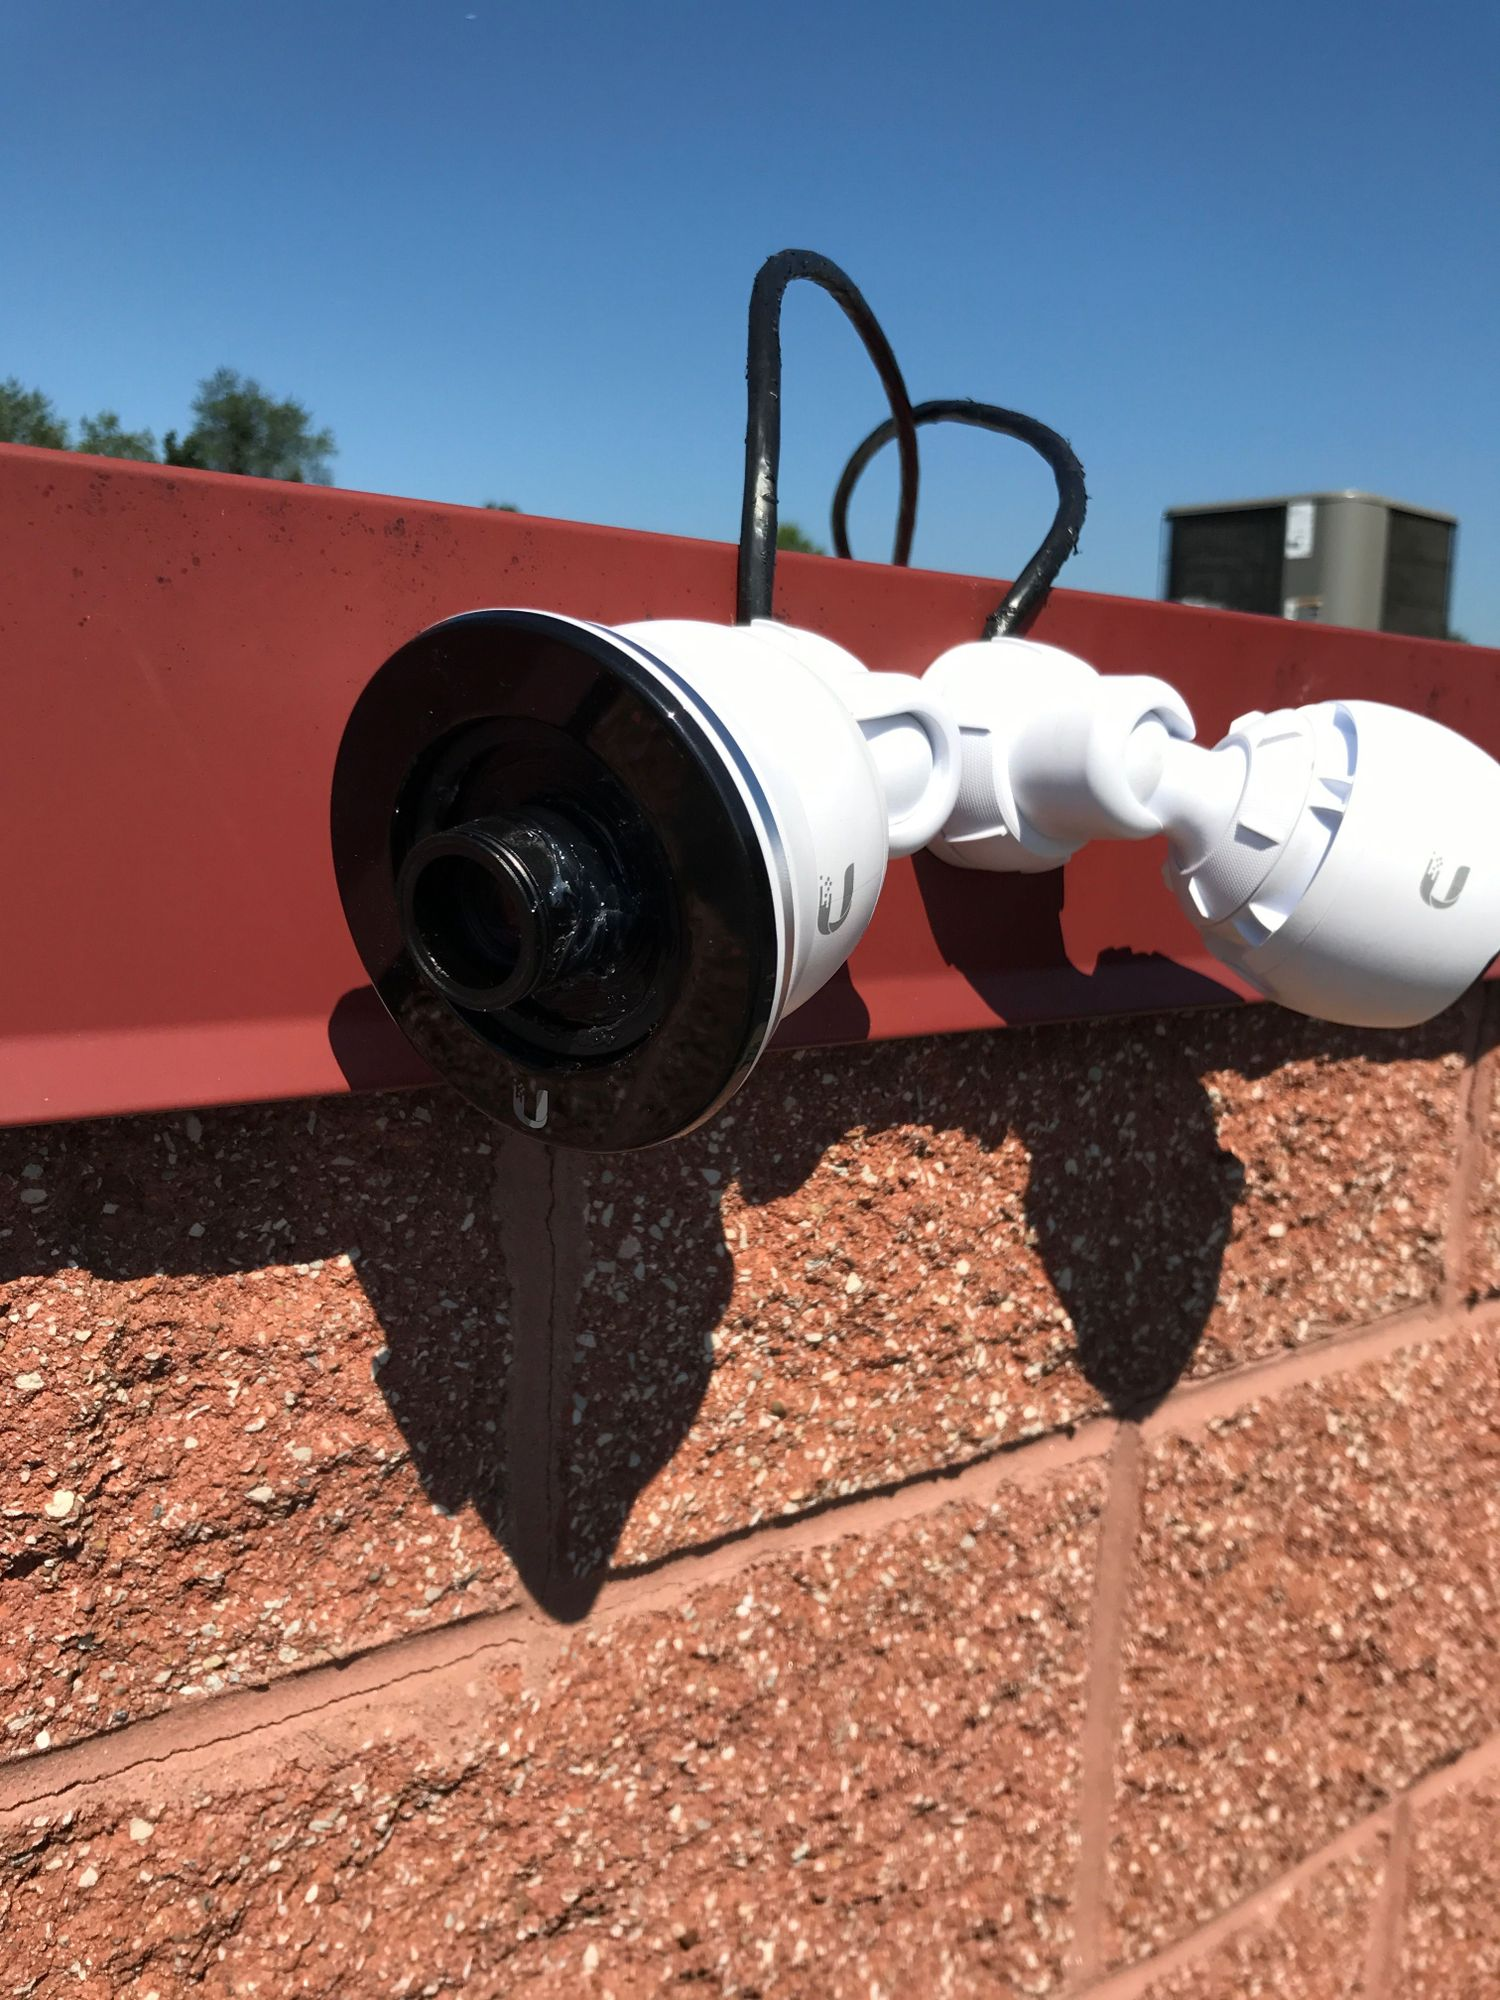 Unifi LPR Camera - Almost There But Need Some Tweaks